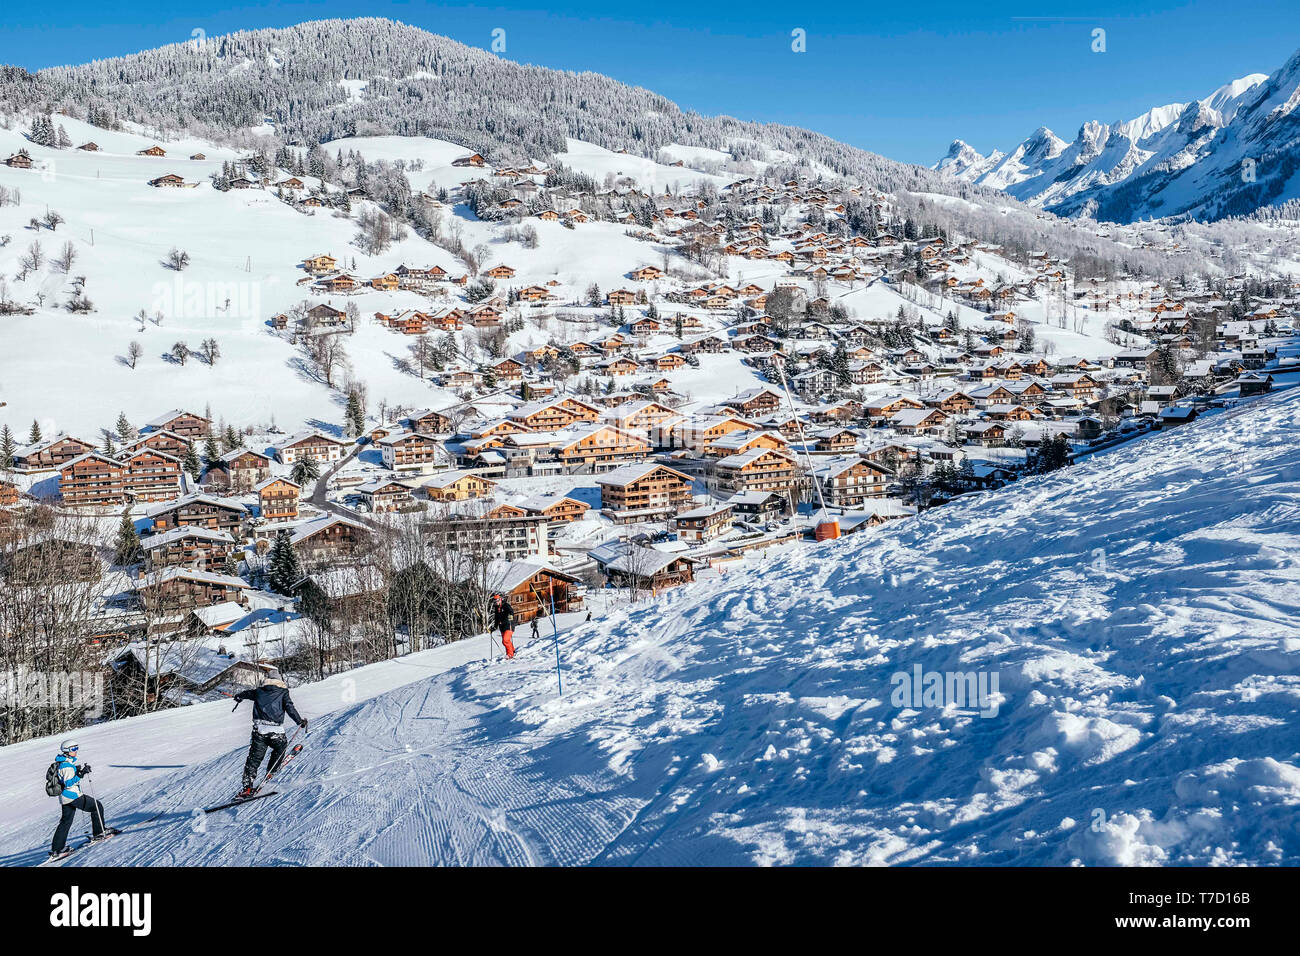 La Clusaz (eastern France): the village covered in snow viewed from the upper ski runs of the ski resort Stock Photo